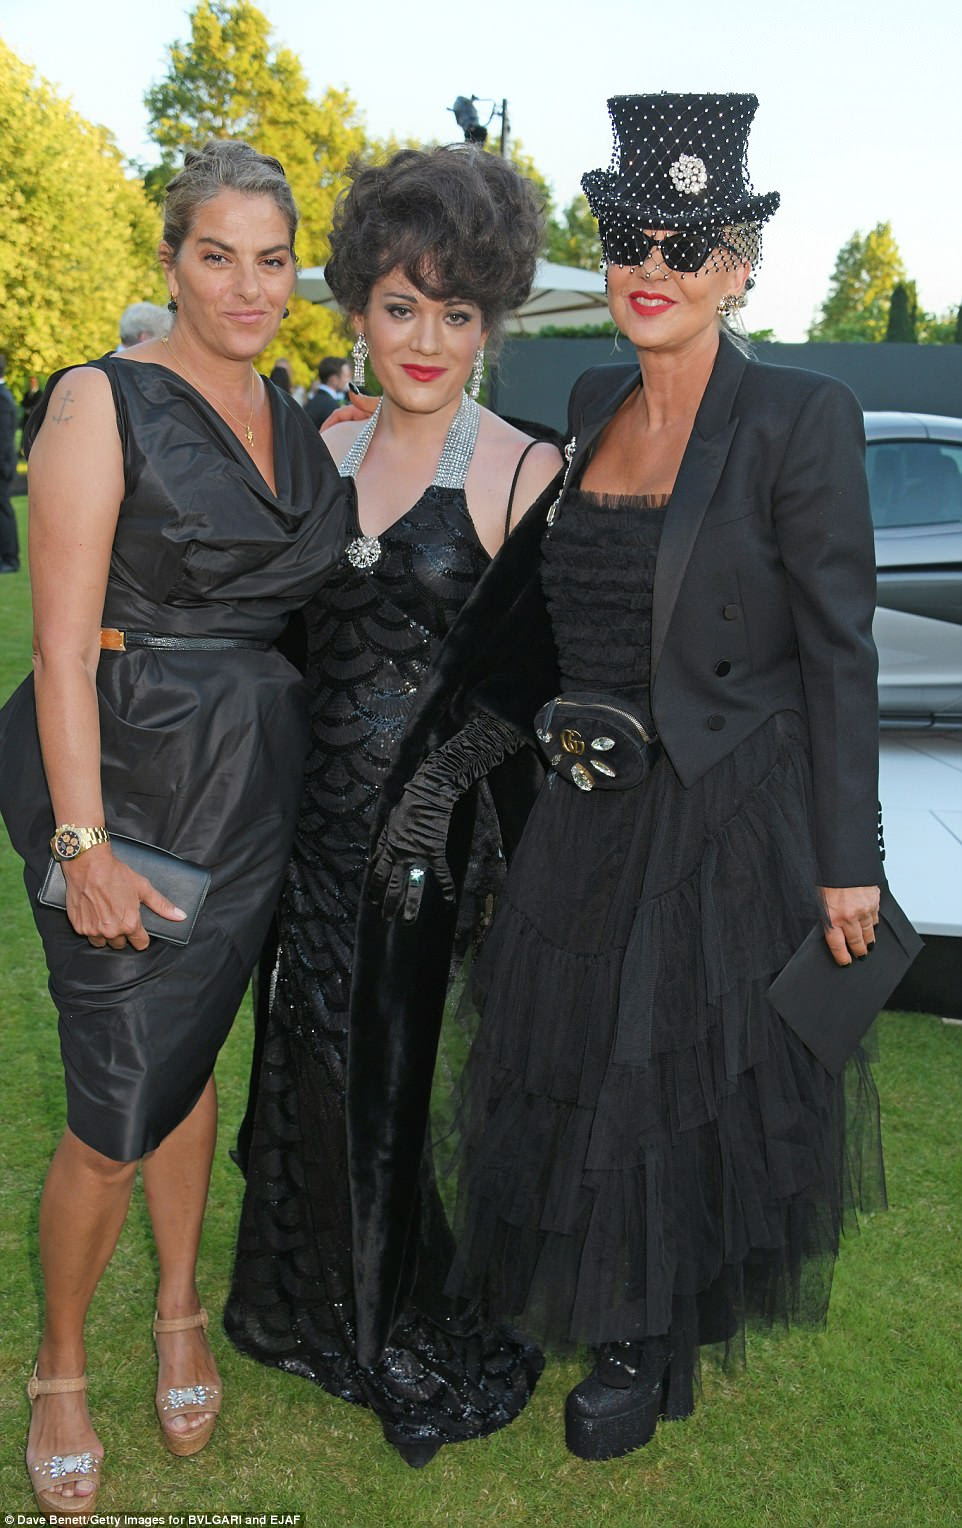 Getting chic done: (L to R) Tracey Emin, Evie Lake and Amanda Eliasch posed for photos together